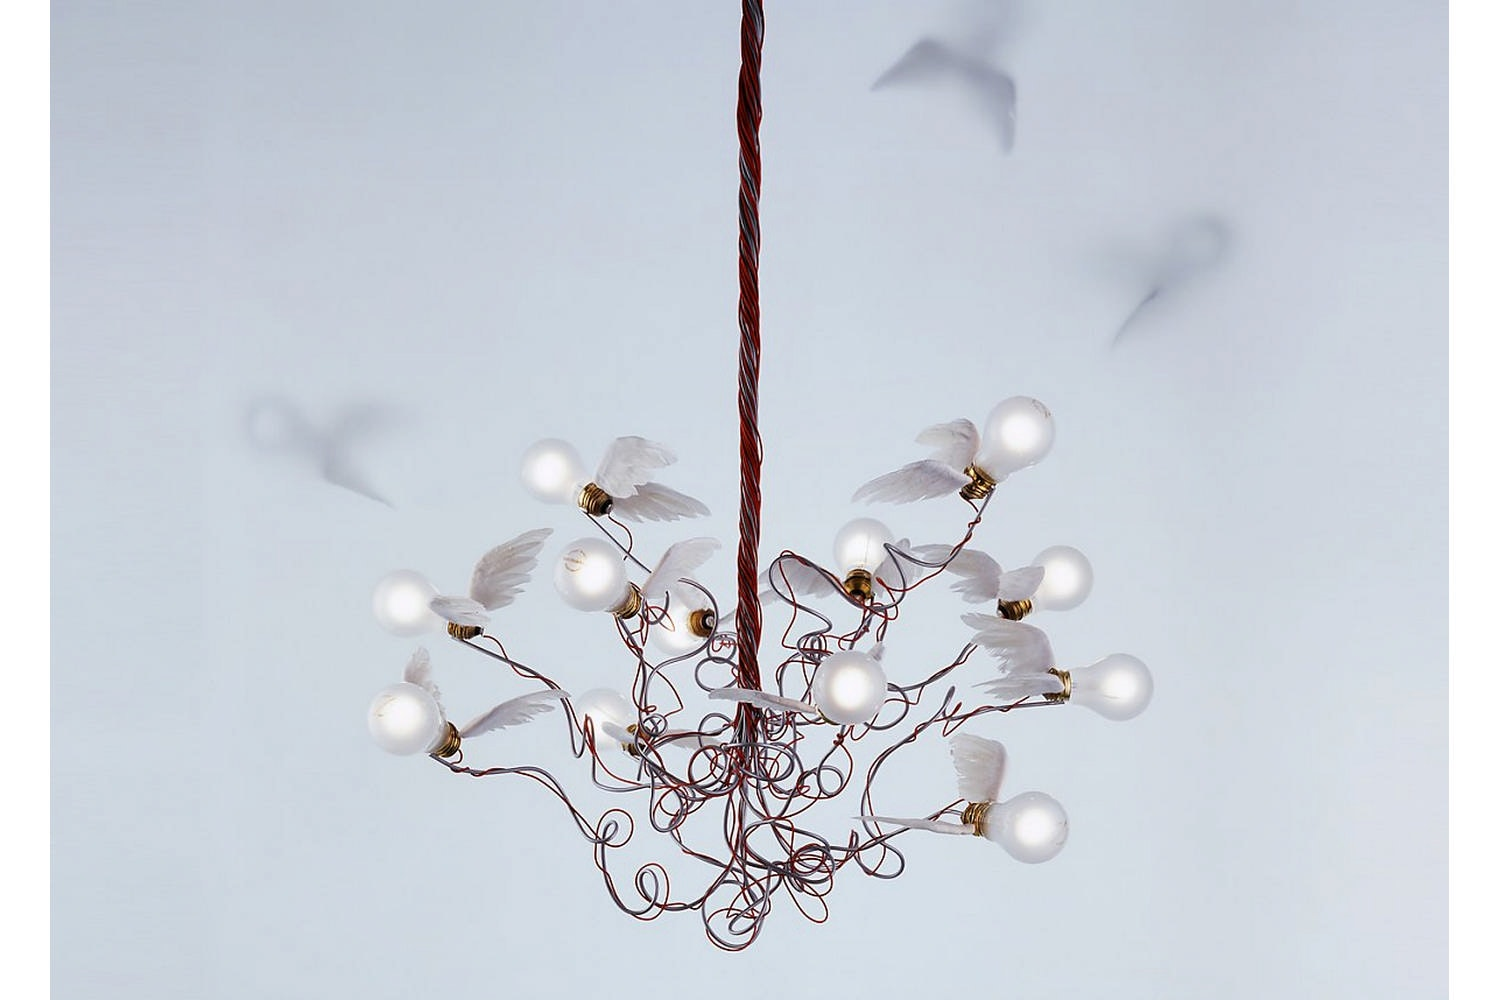 Birdie Suspension Lamp by Ingo Maurer for Ingo Maurer